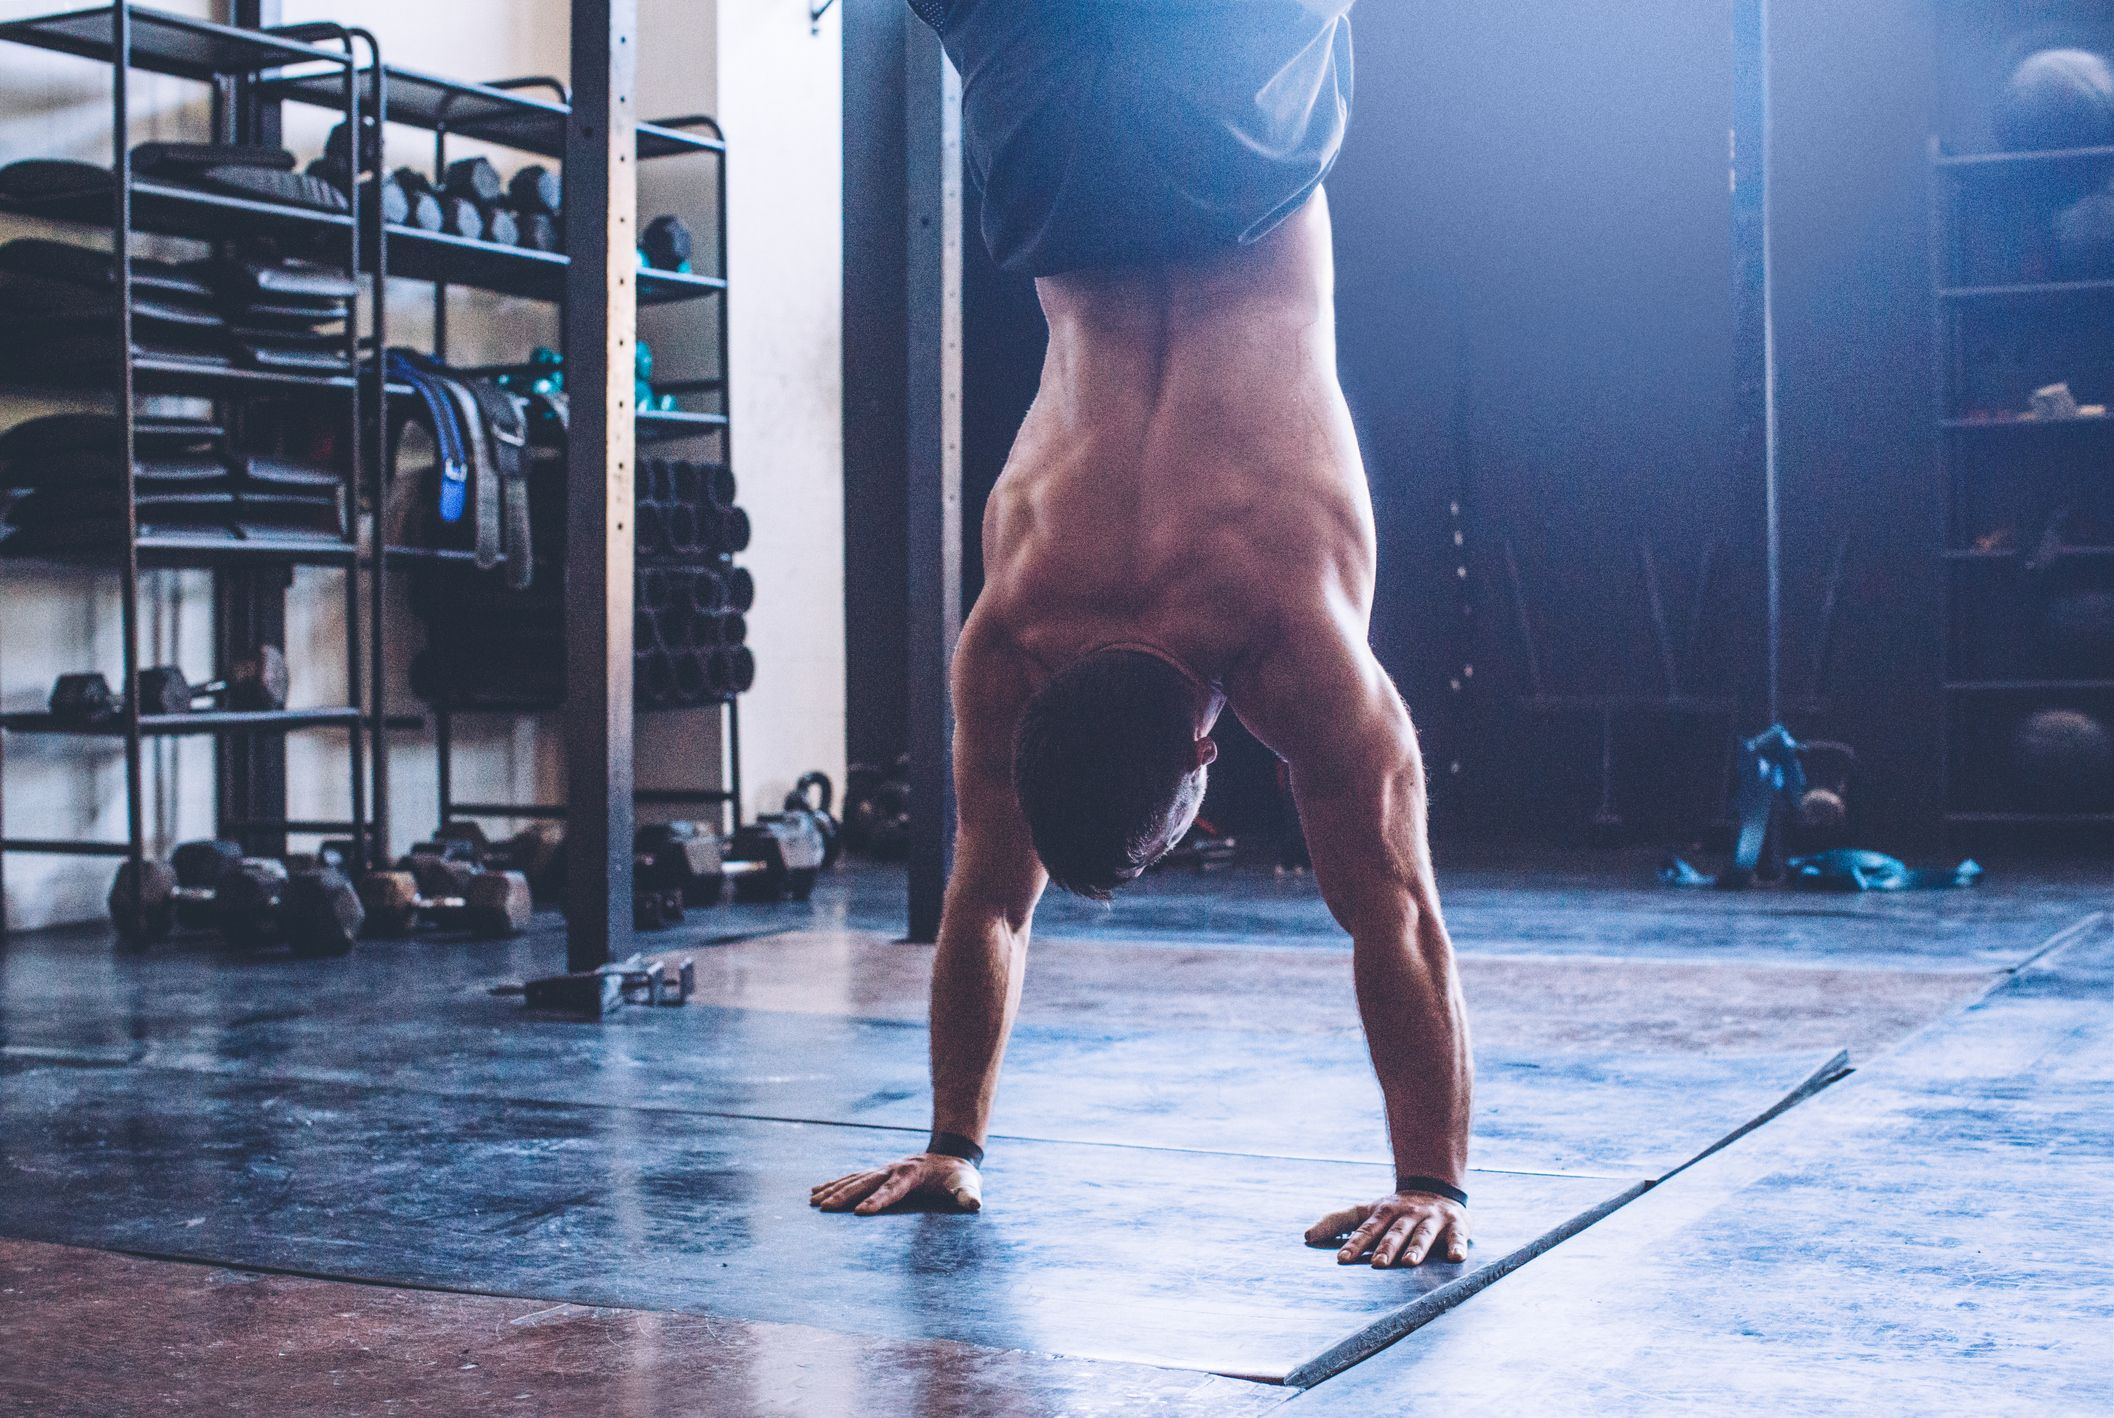 Watch How an Average Guy Mastered the Handstand in Just 5 Months